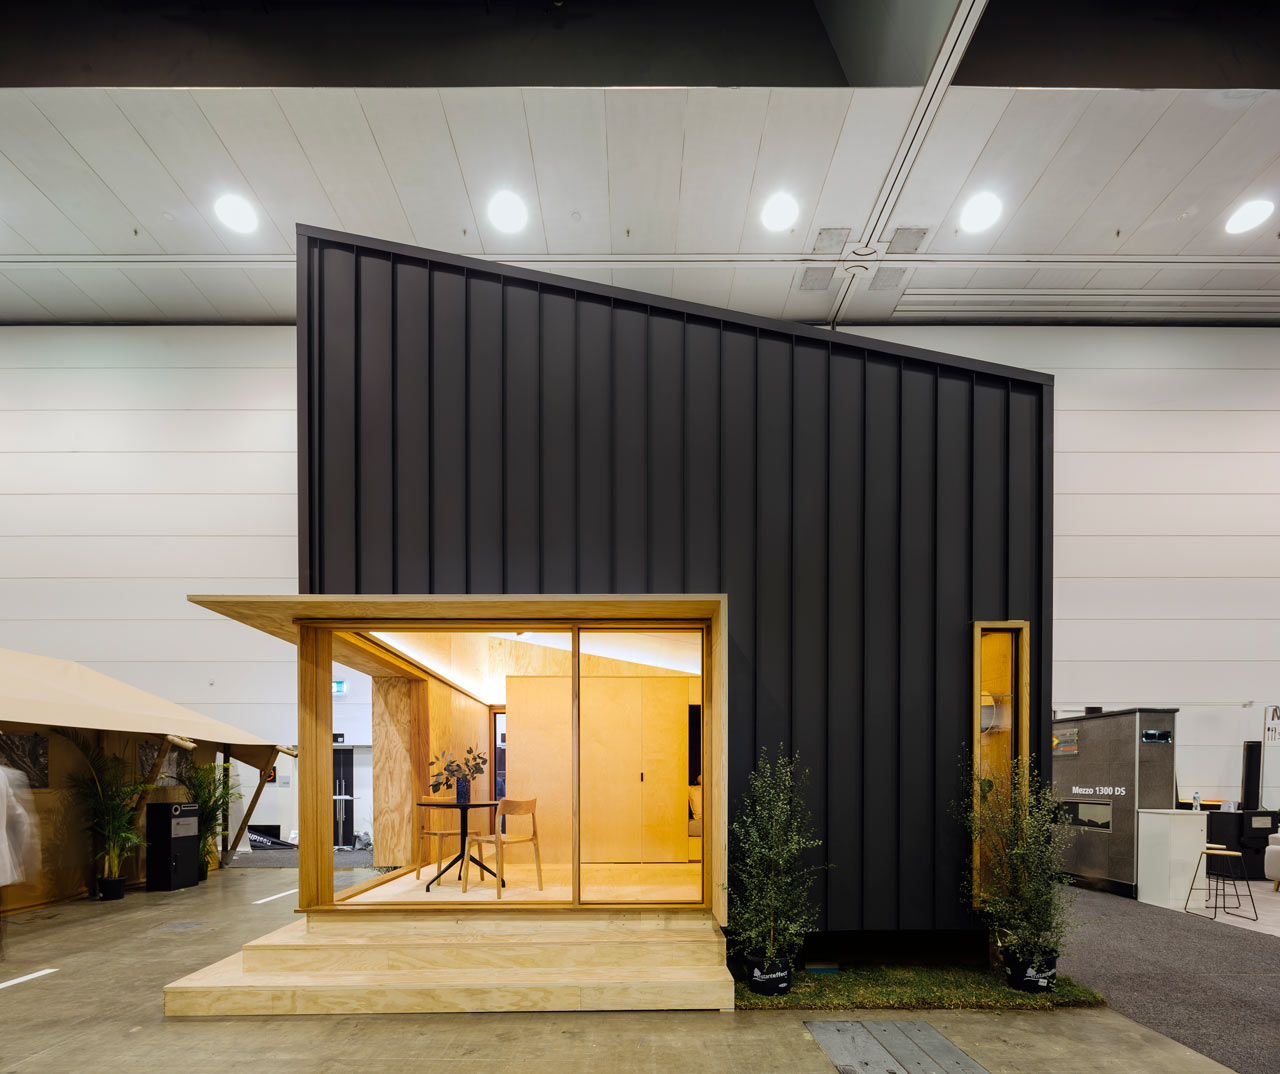 Home Design Ideas Architecture: Grimshaw Designs A Tiny Home That's Affordable